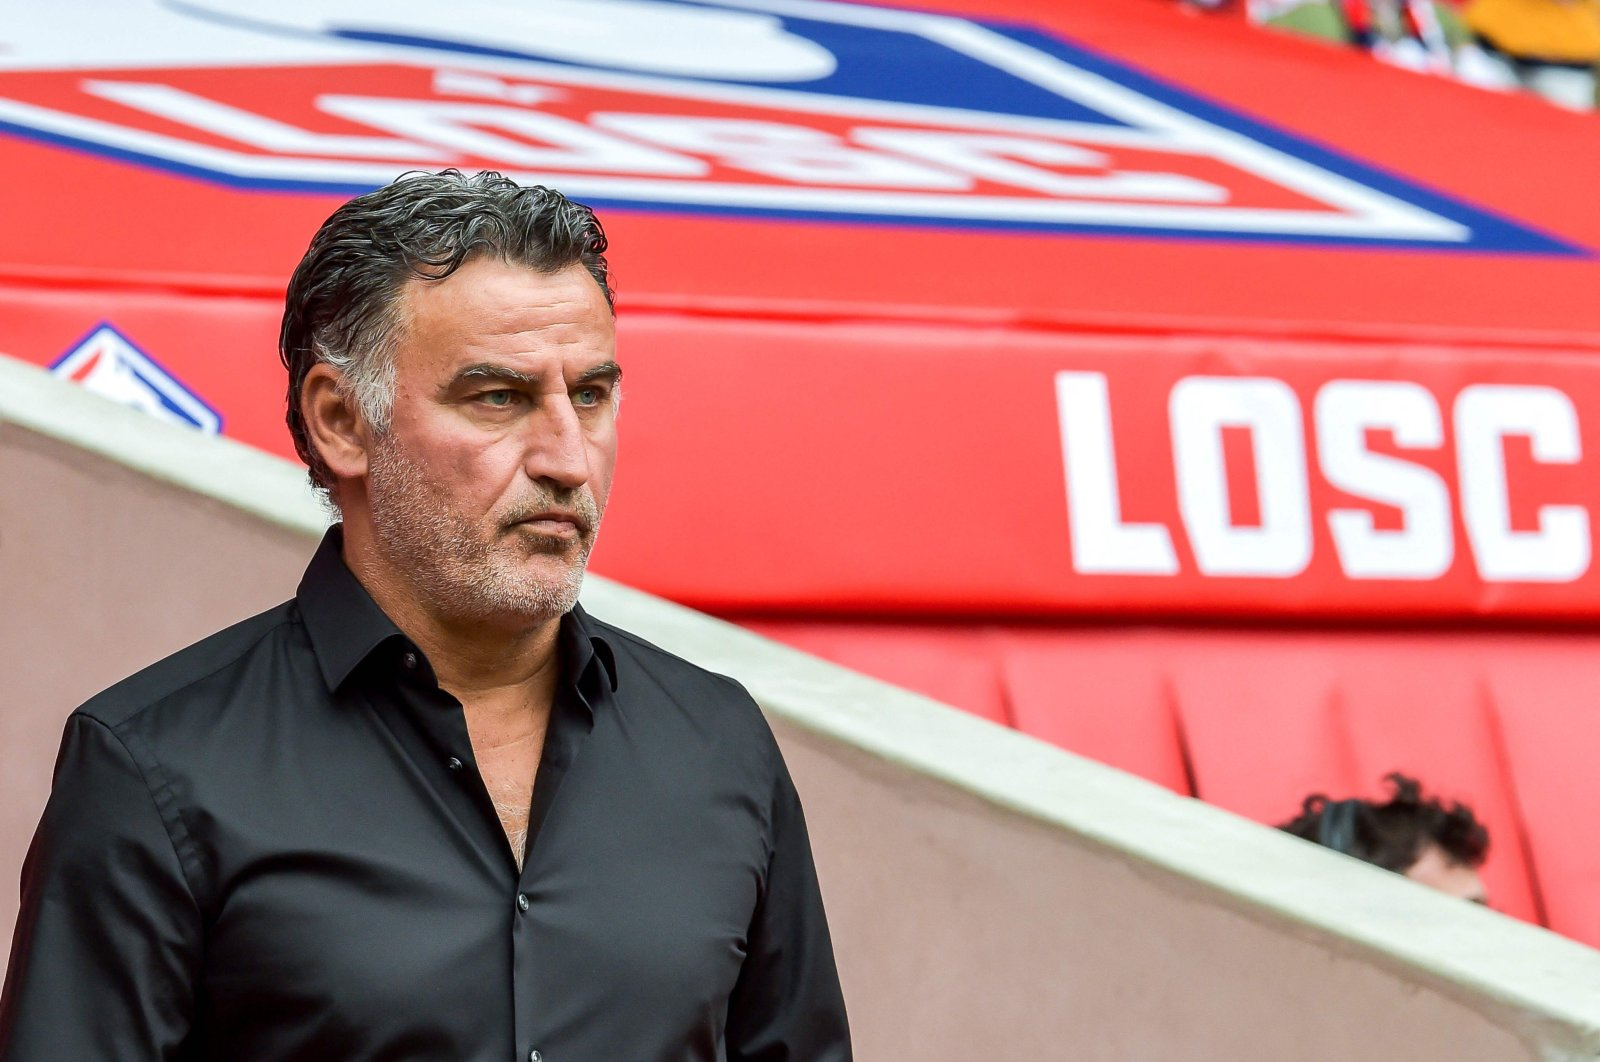 Lille's French coach Christophe Galtier looks on during the French Ligue 1 match against FC Nantes at the Pierre Mauroy Stadium, in Villeneuve-d'Ascq, northern France, Aug. 11, 2019.